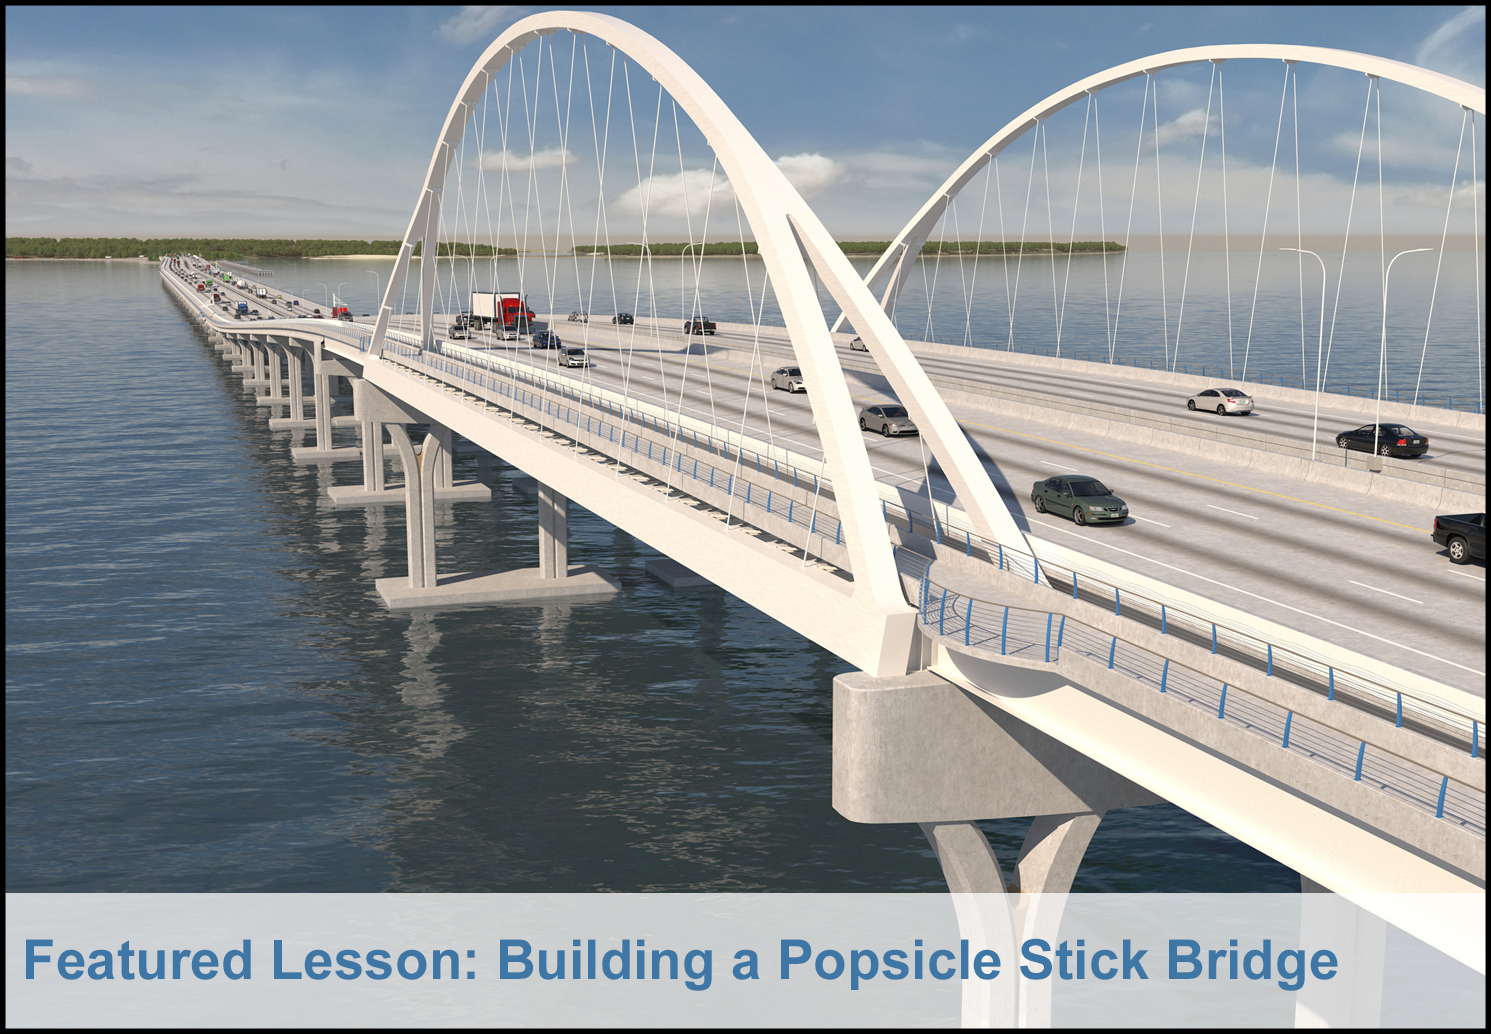 April Feature: Building a Popsicle Stick Bridge